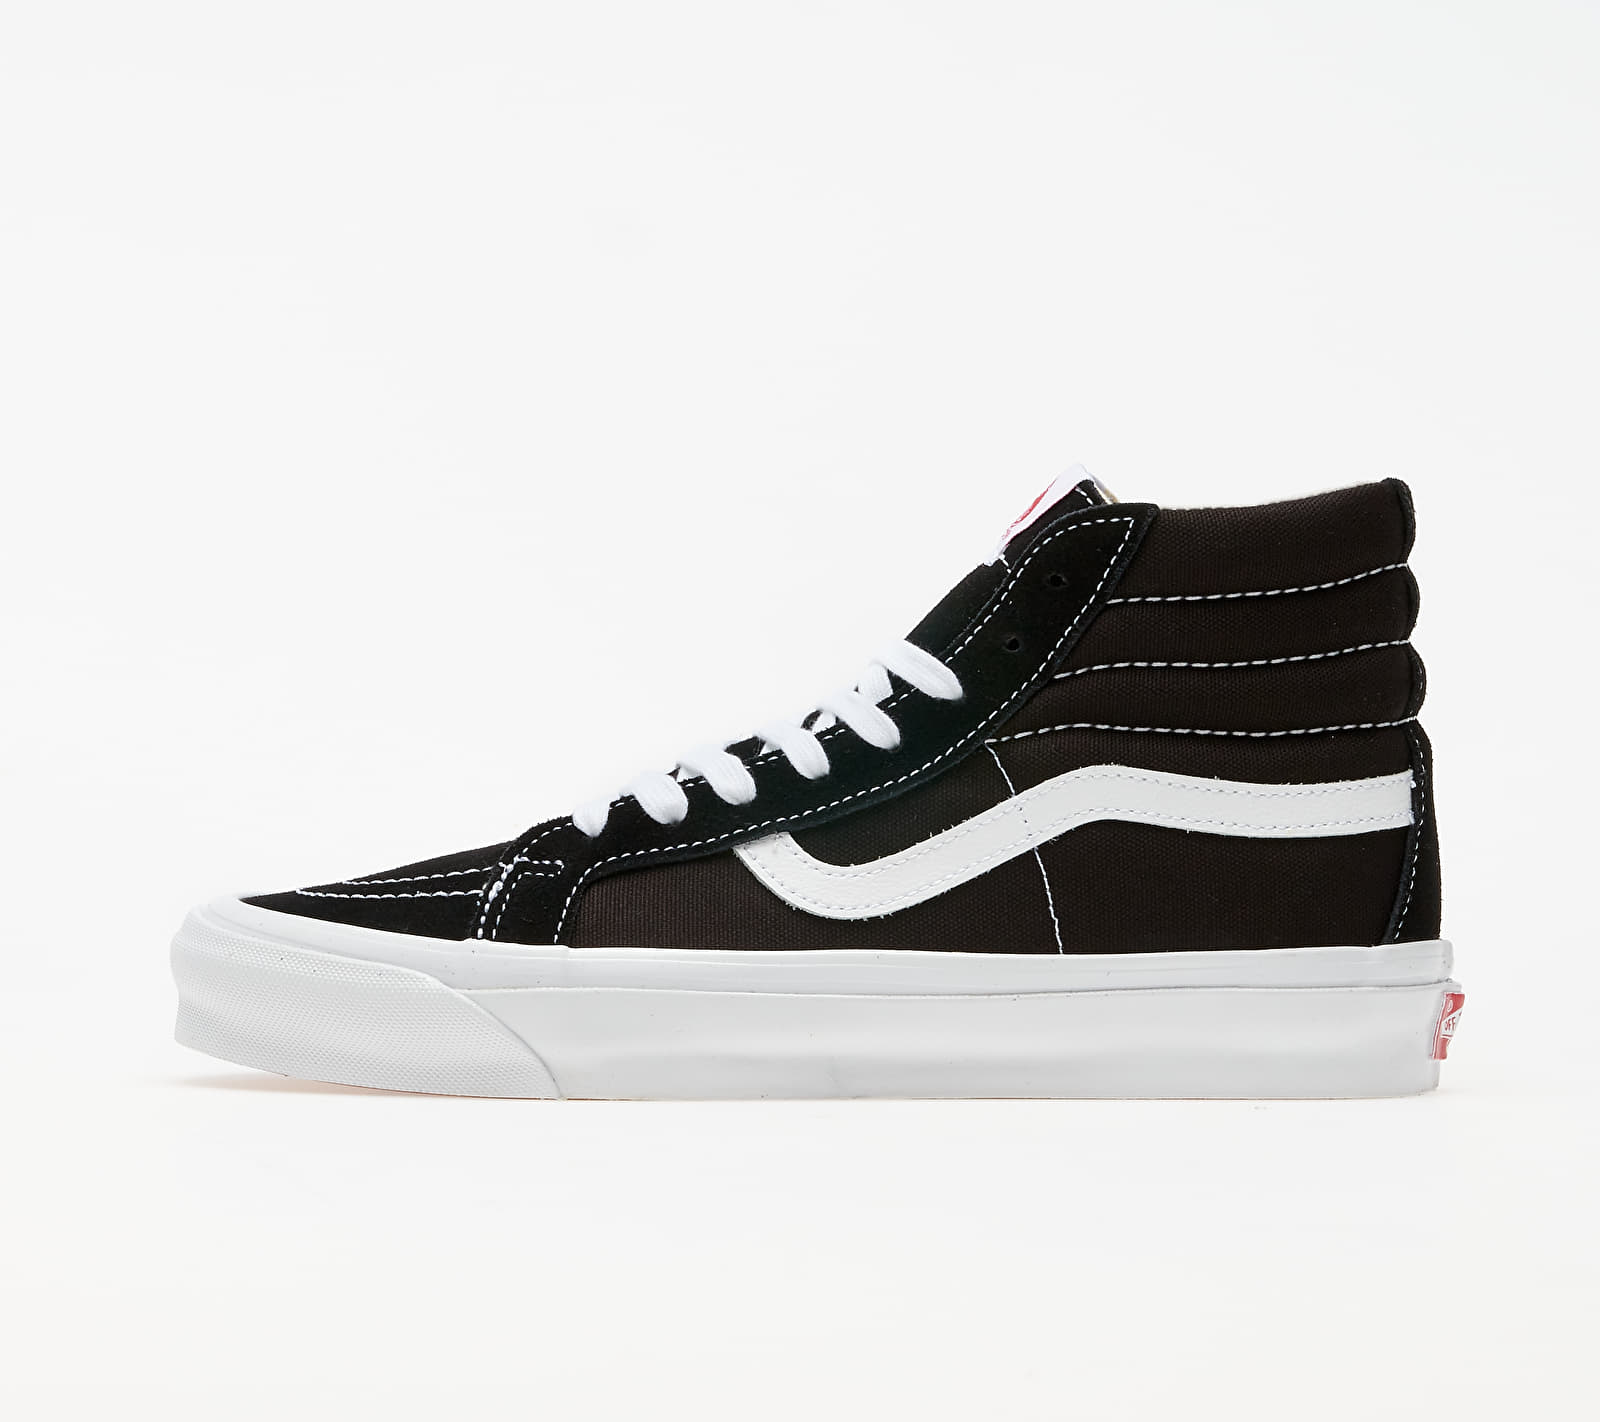 Vans Vault OG Sk8-Hi LX (Suede/ Canvas) Black/ True White EUR 45